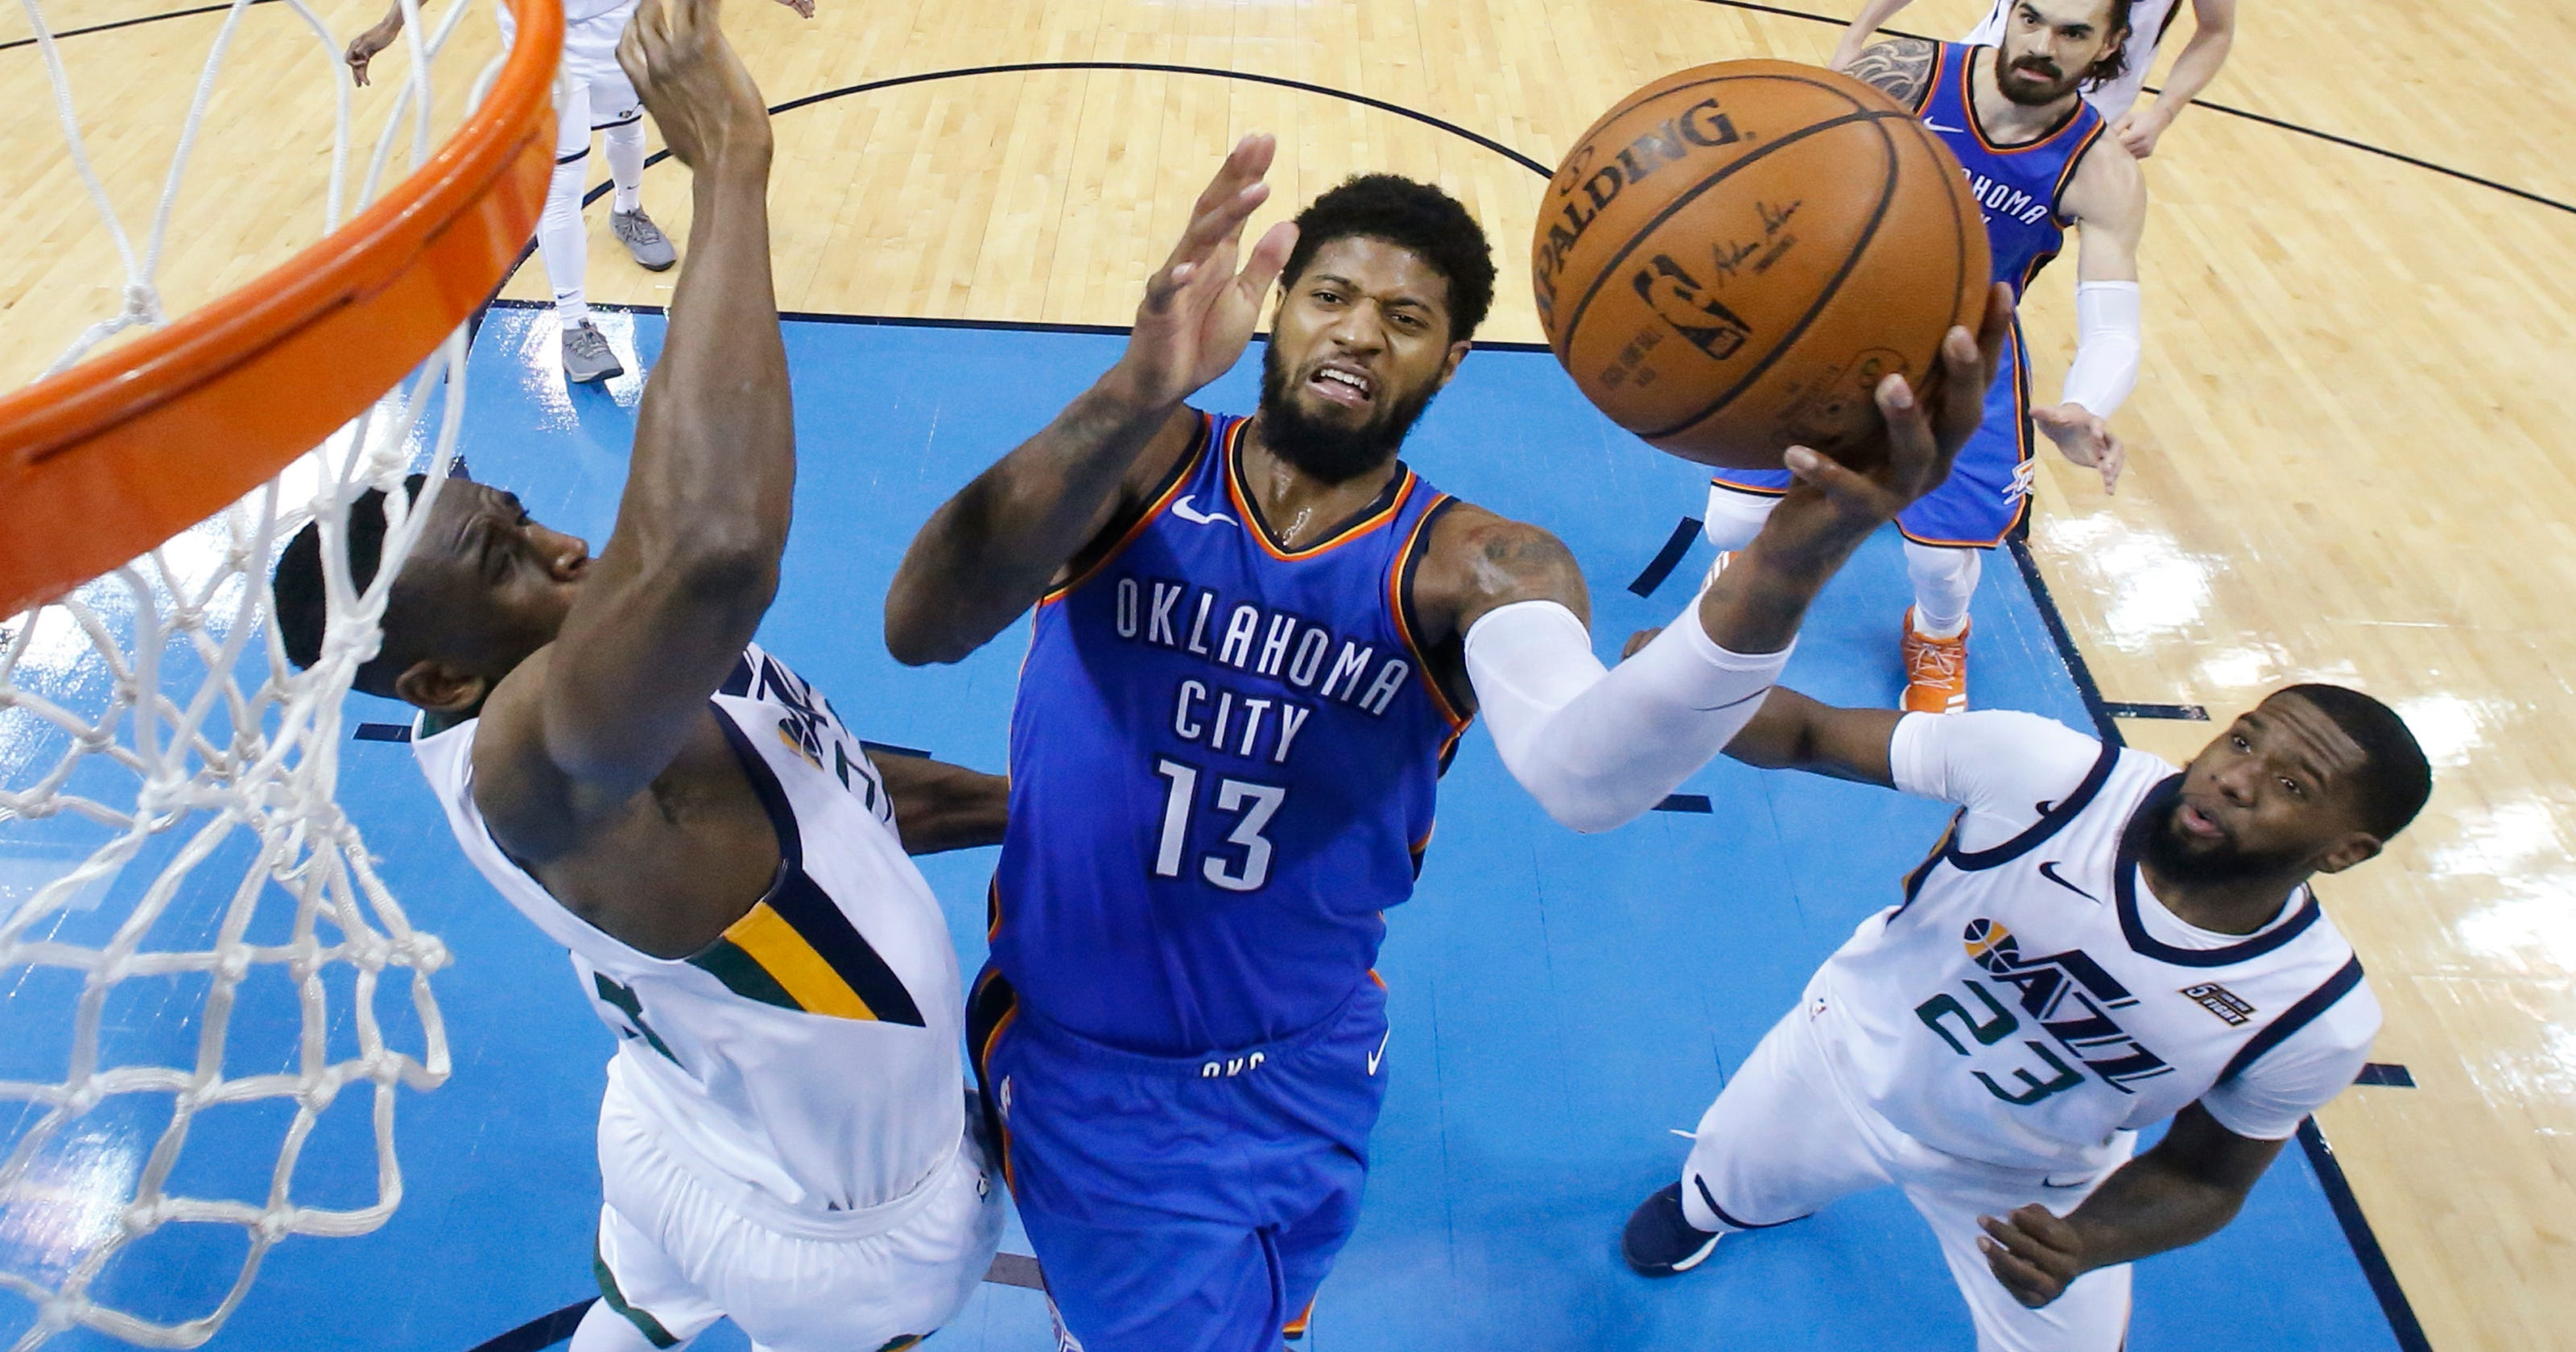 George's summer decision looms large for Thunder